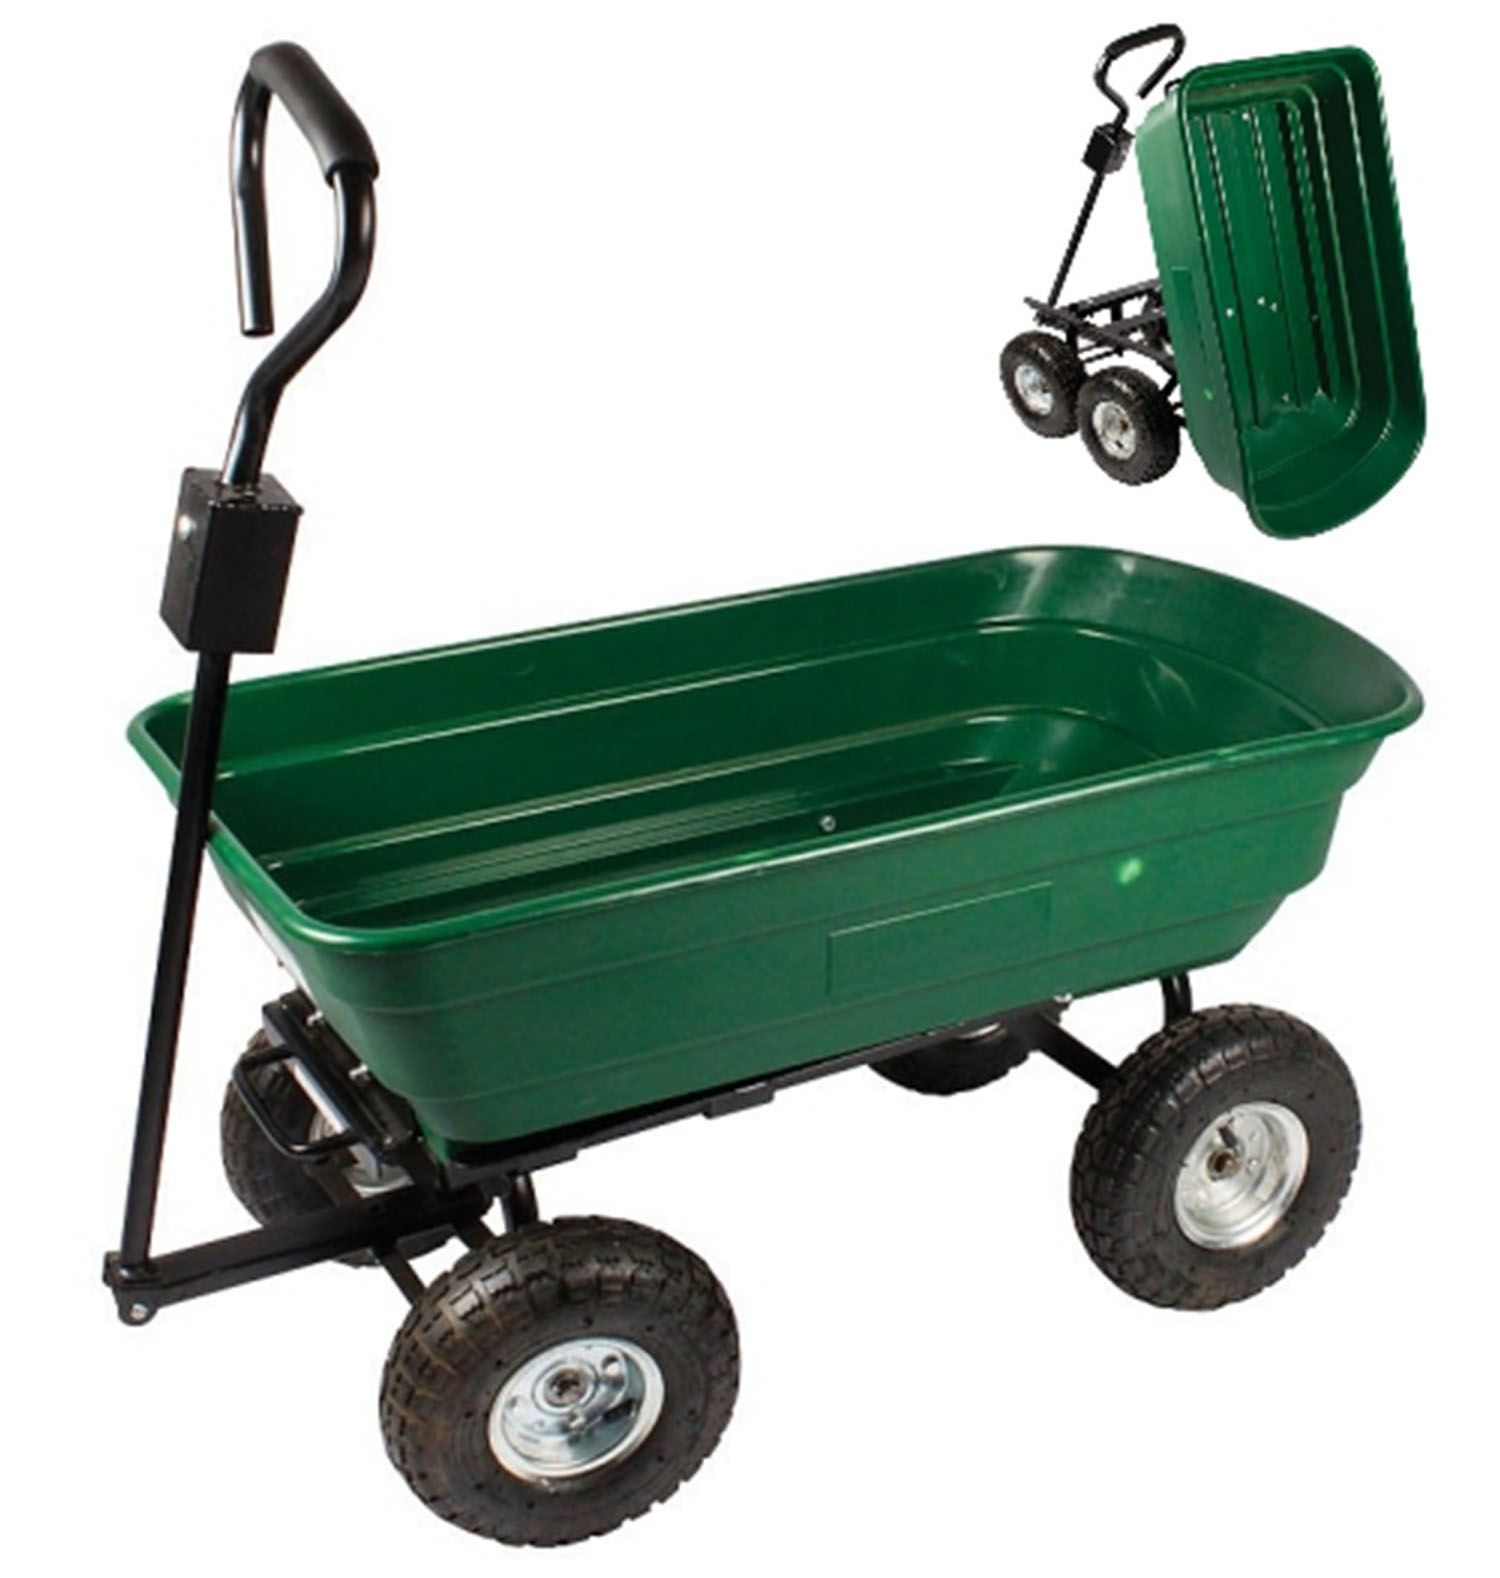 Garden Utility Cart With Wheels : New garden heavy duty utility wheel trolley cart dump